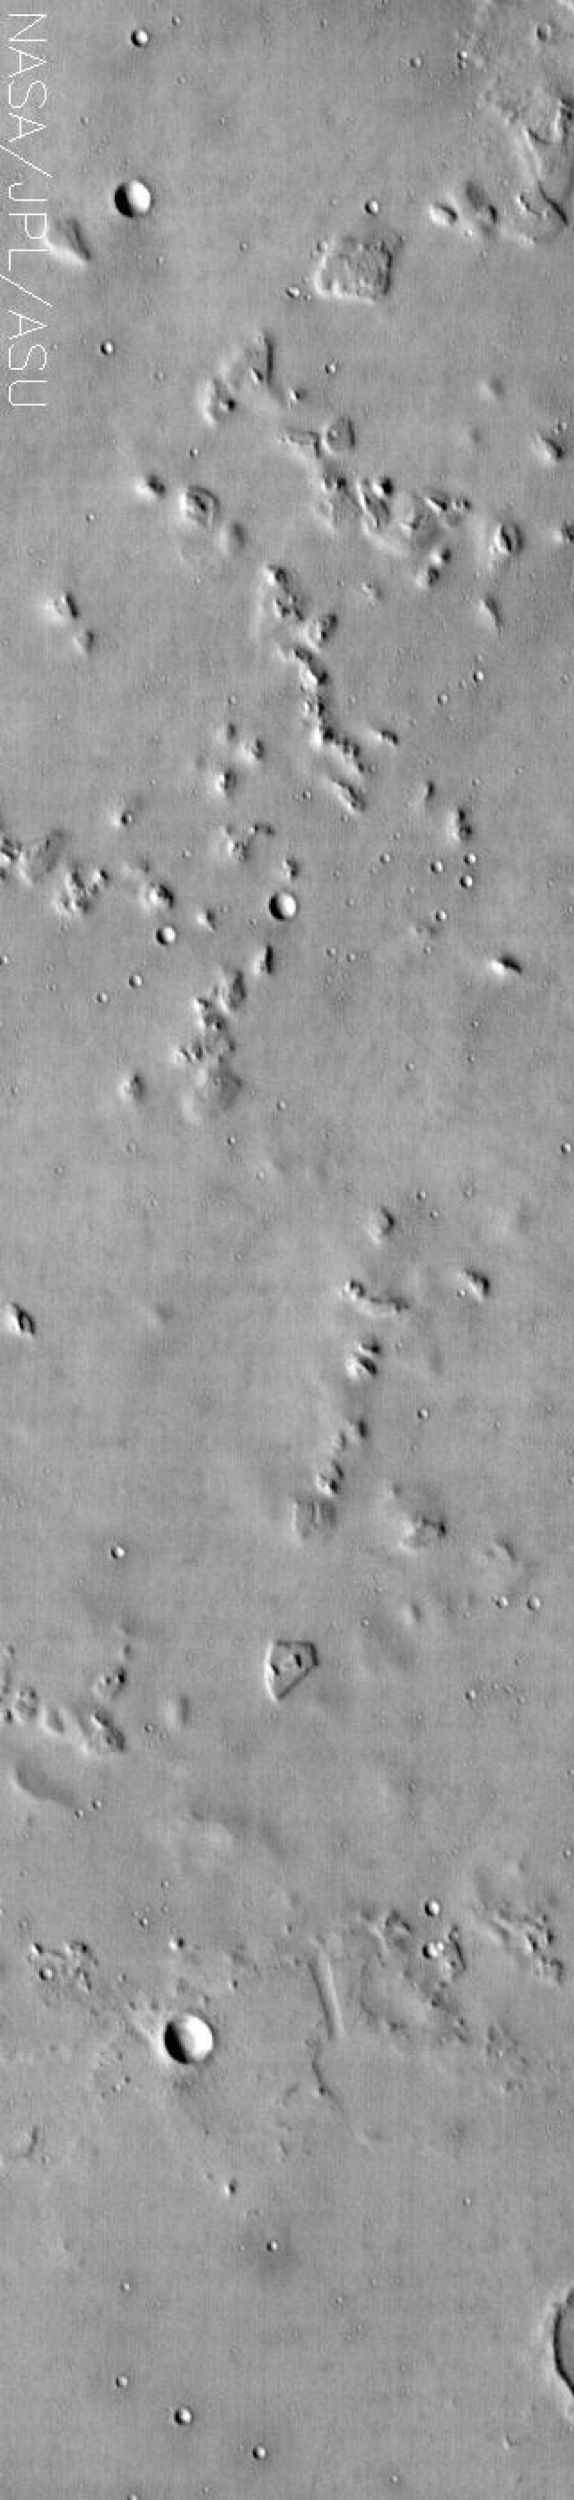 This NASA Mars Odyssey image shows a location near the highland-lowland boundary scarp in a region called Nepenthes Mensae with relatively smooth plains dotted with some craters and stepped mesas and knobs.